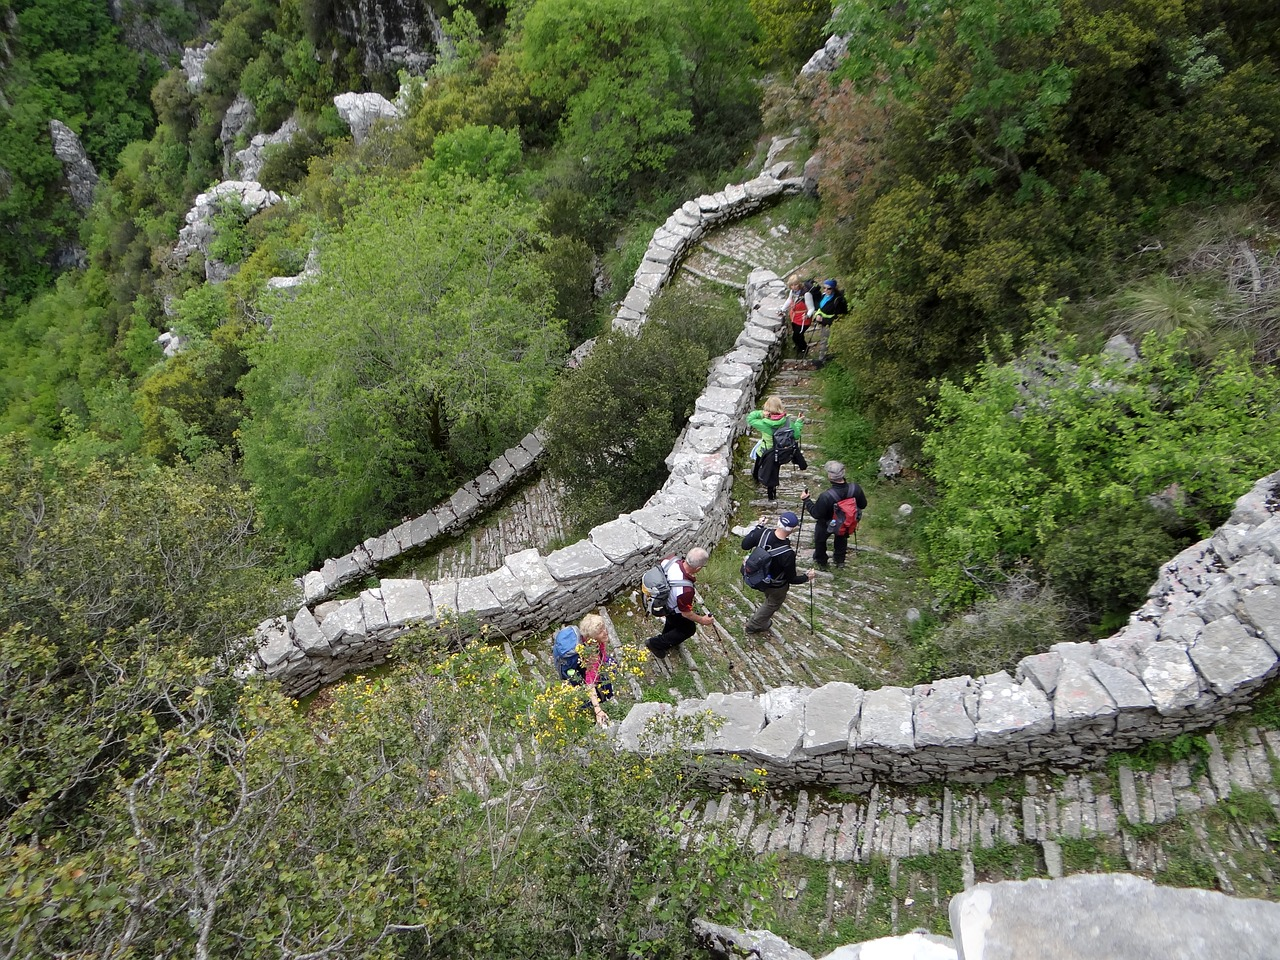 Hikers in The Vikos Gorge